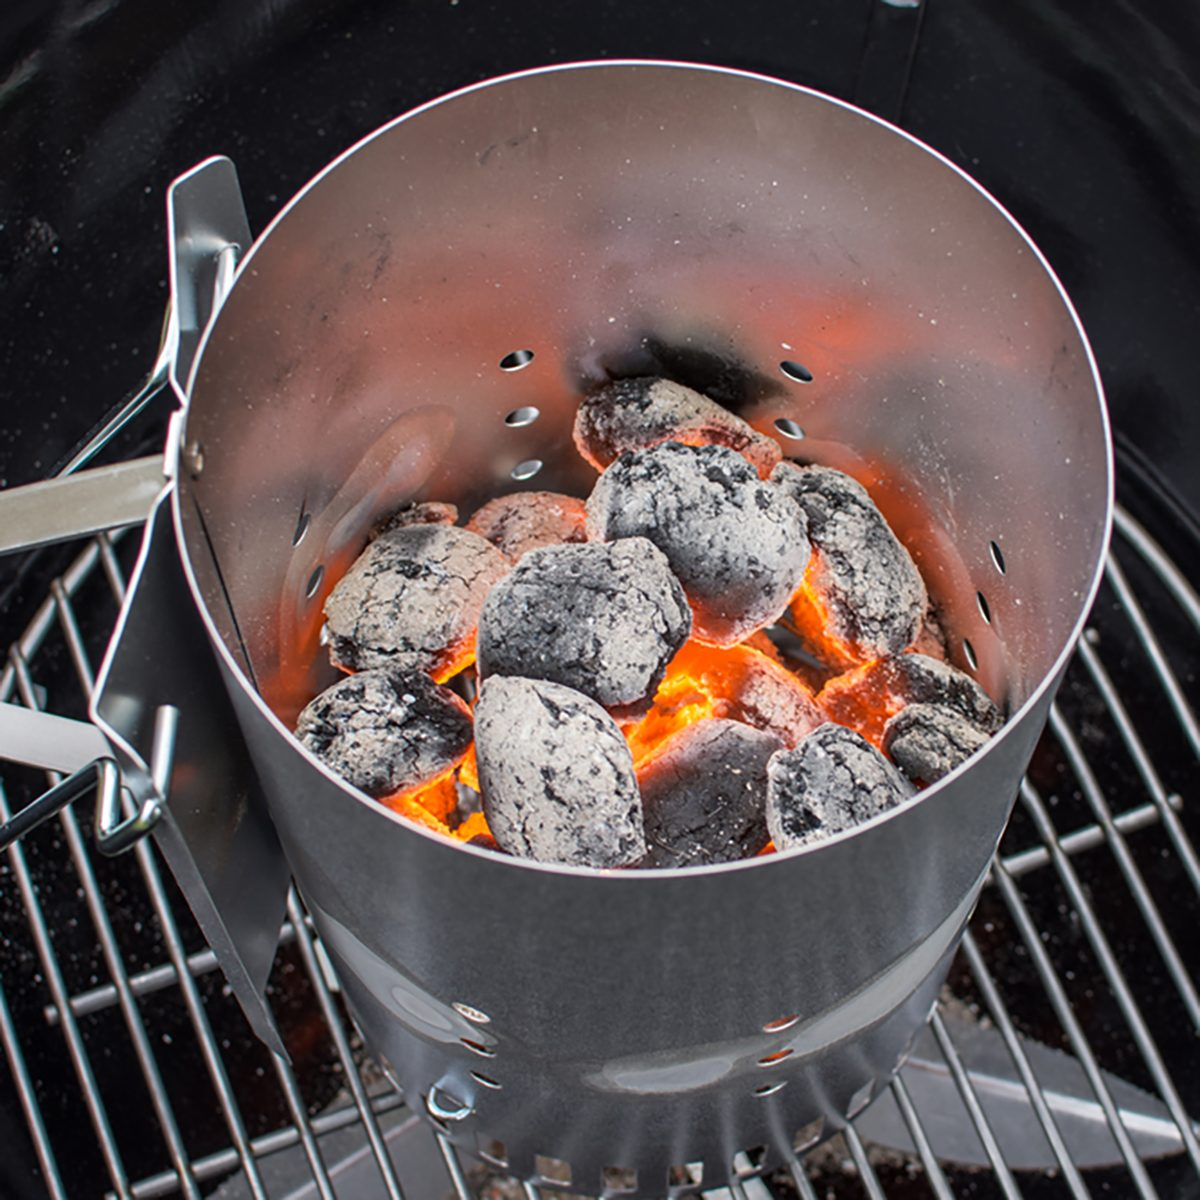 Flaming hot charcoal briquettes in a grill starter;